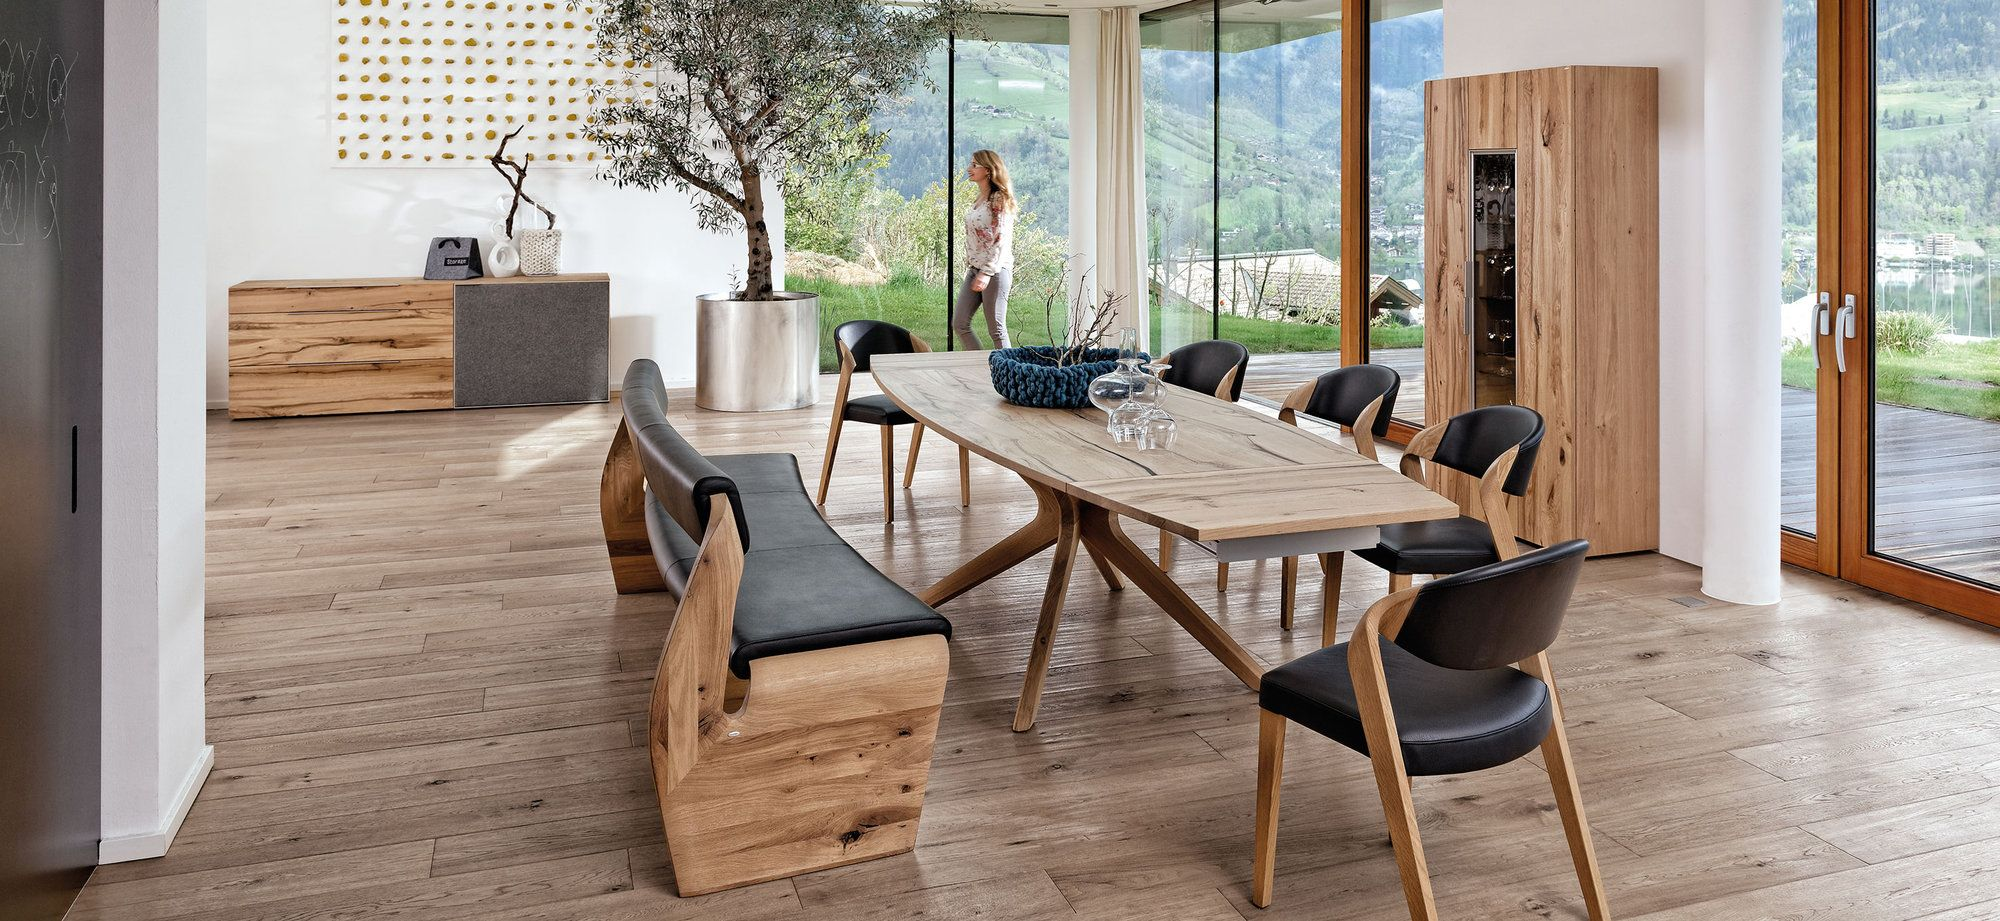 v alpin esstisch furniture sofa furniture und table furniture